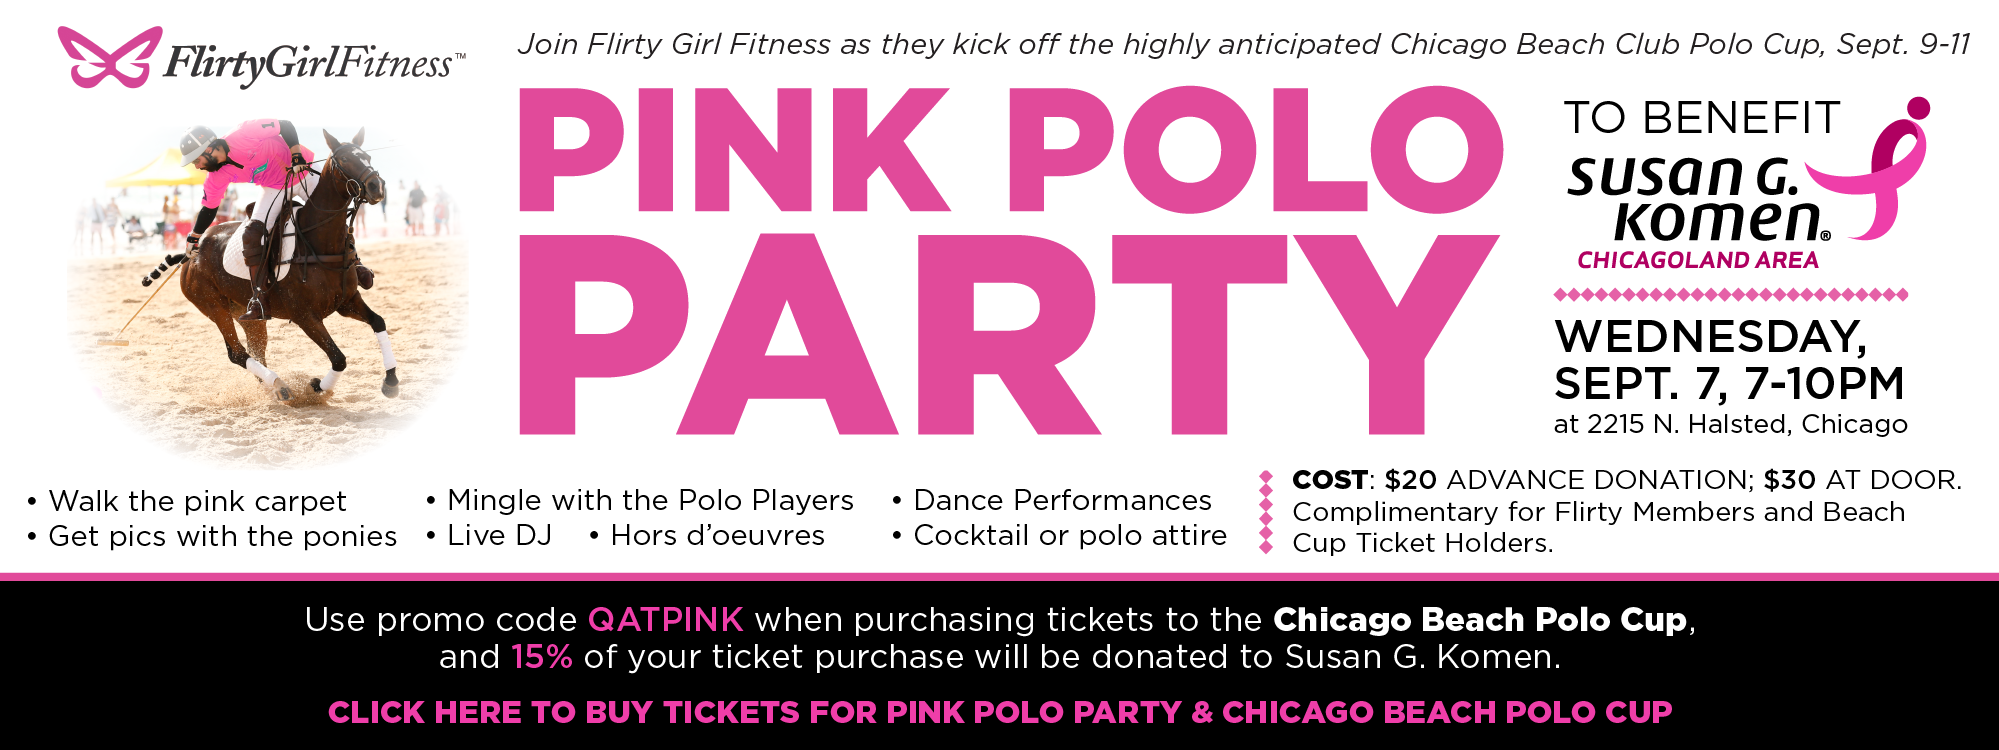 Aug24_PinkPoloPartyBanner-01